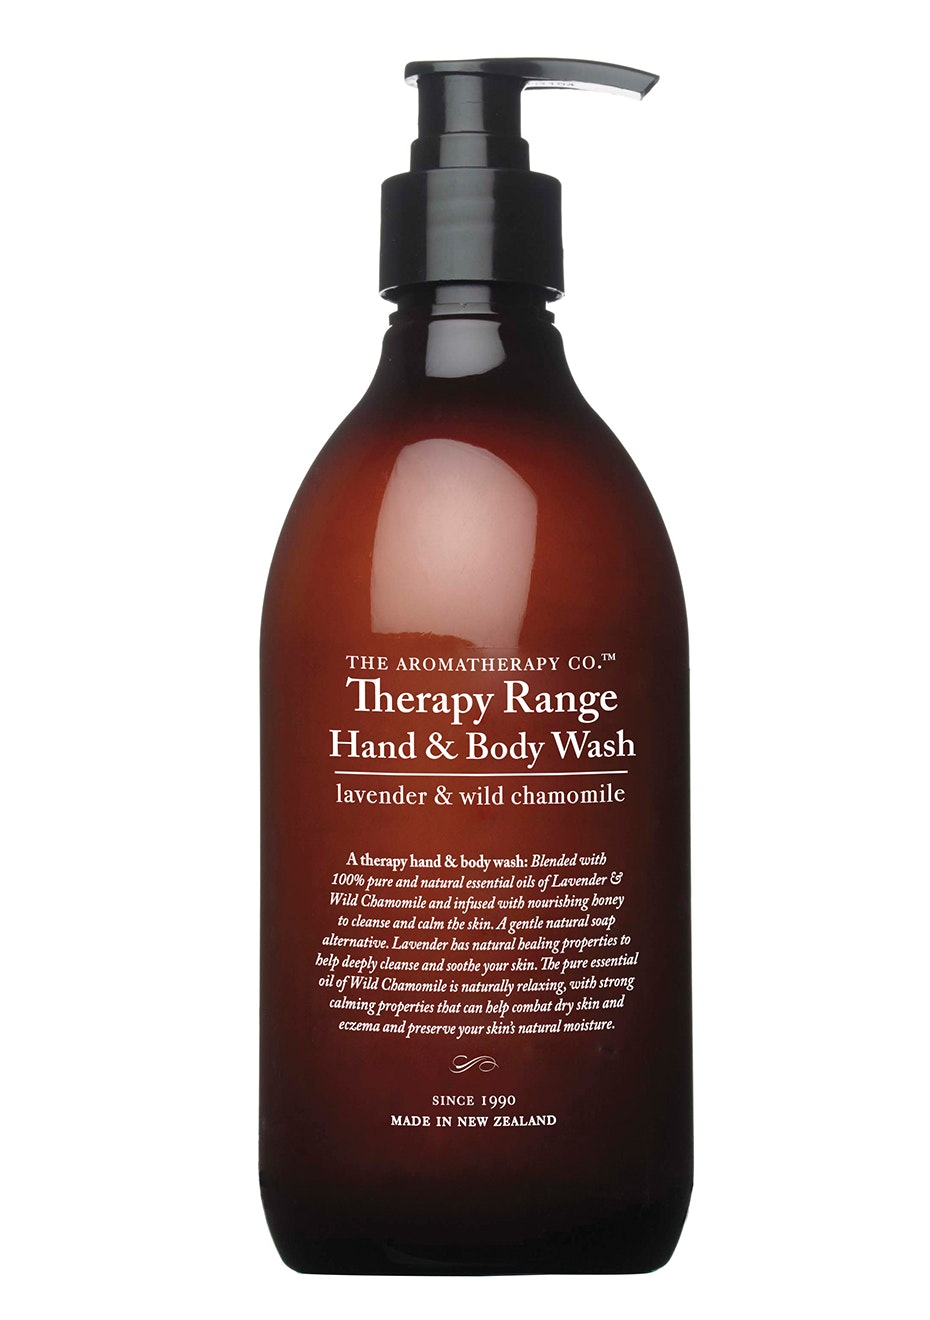 The Aromatherapy Co. Therapy Hand & Body Wash - Lavender, Manuka & Wild Chamomile